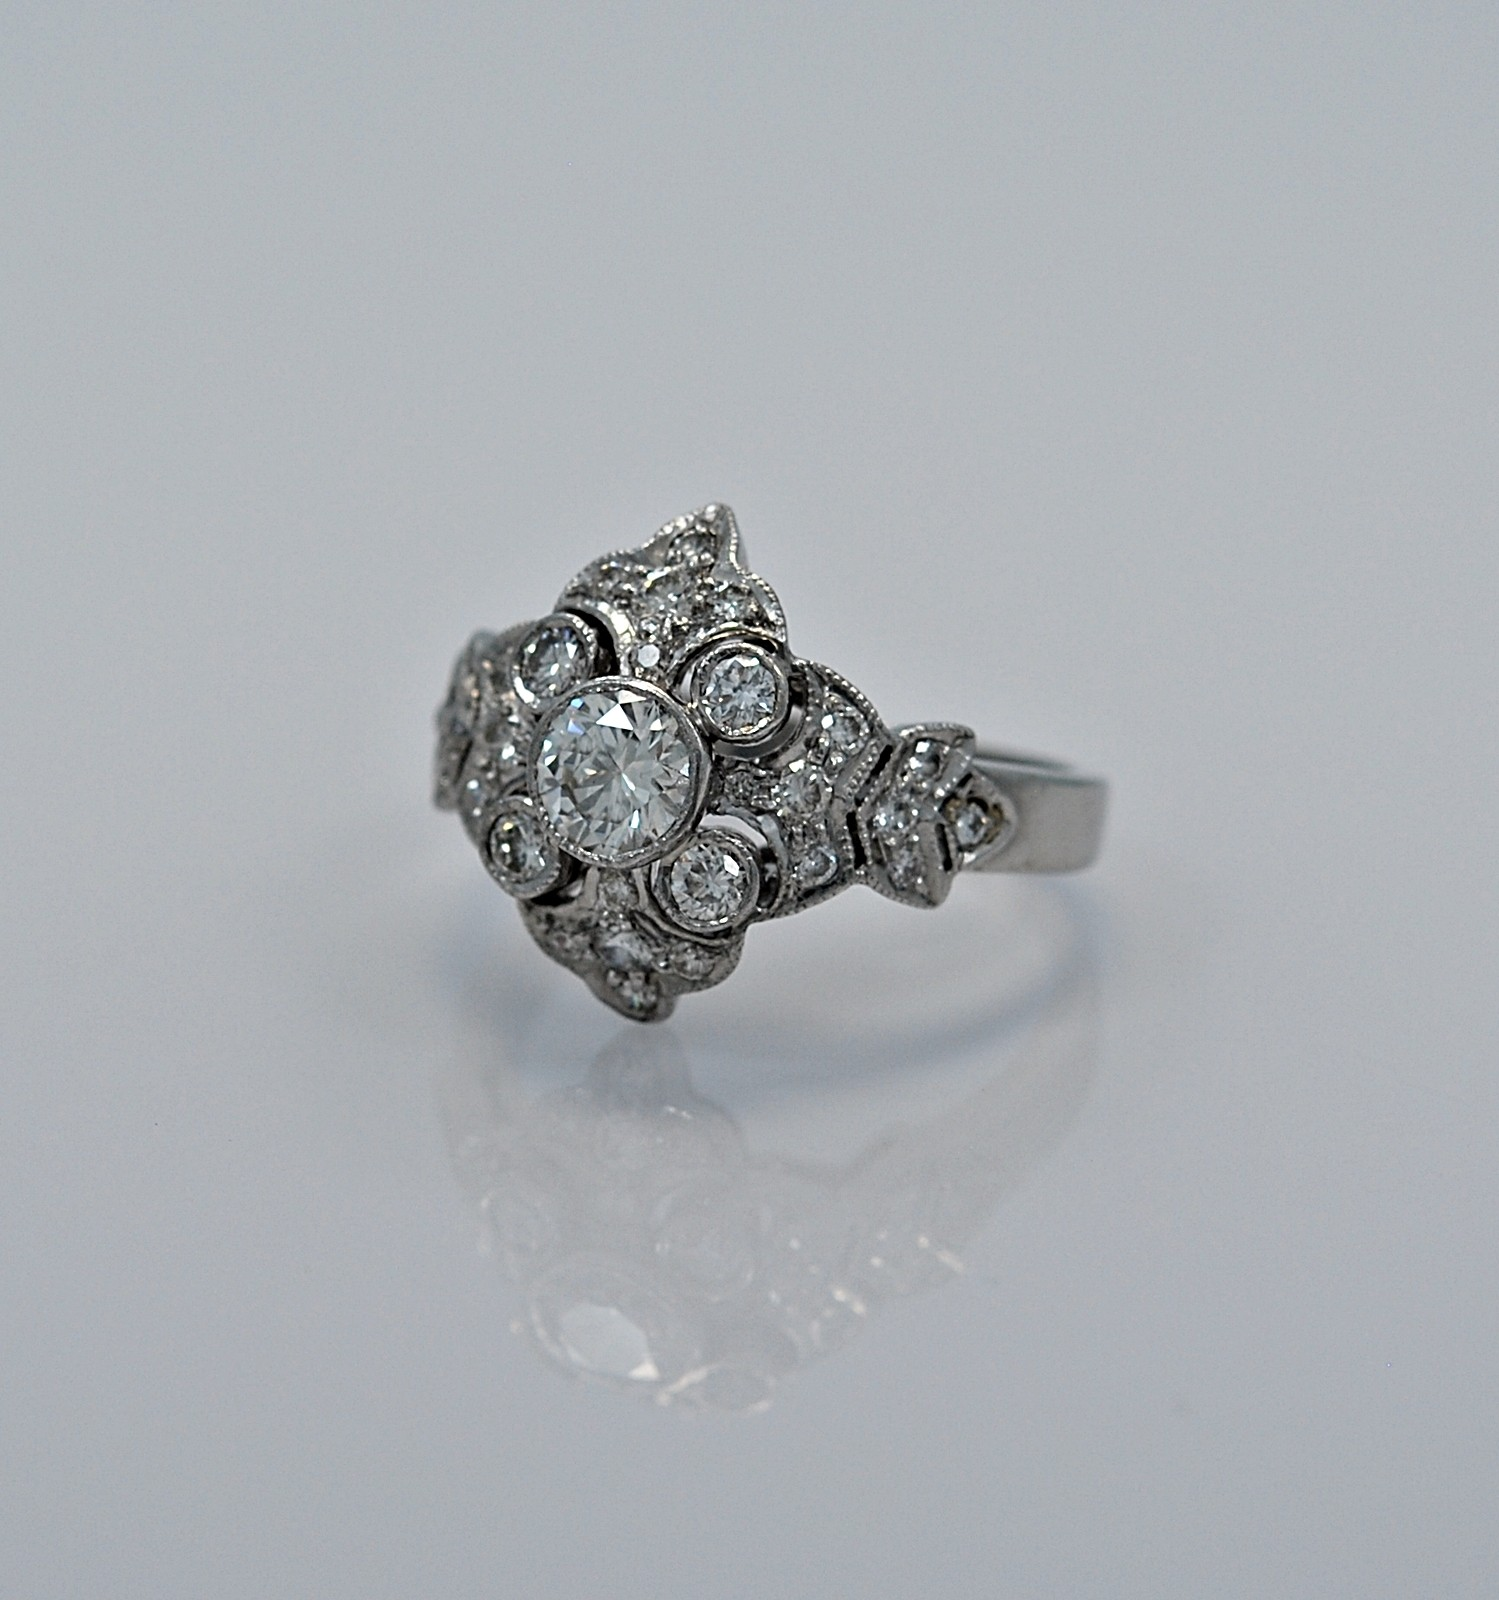 40ct-diamond-18k-white-gold-vintage-estate-engagement-fashion-ring-head